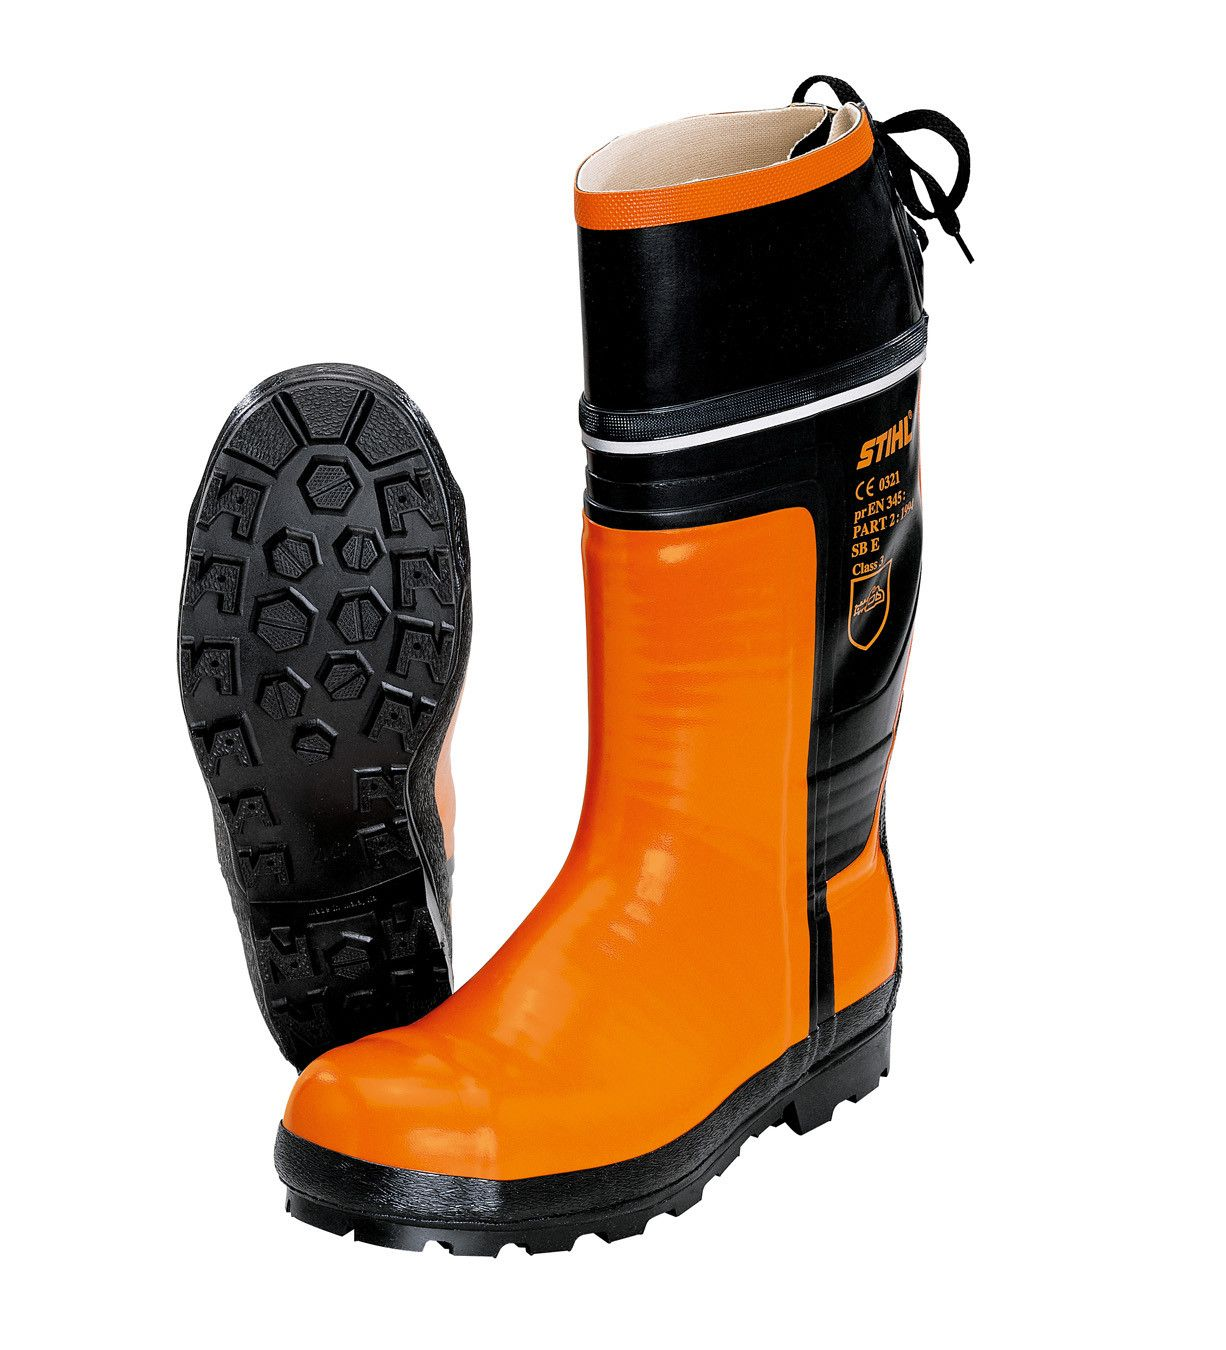 Stihl Special Rubber Chain Saw Boots